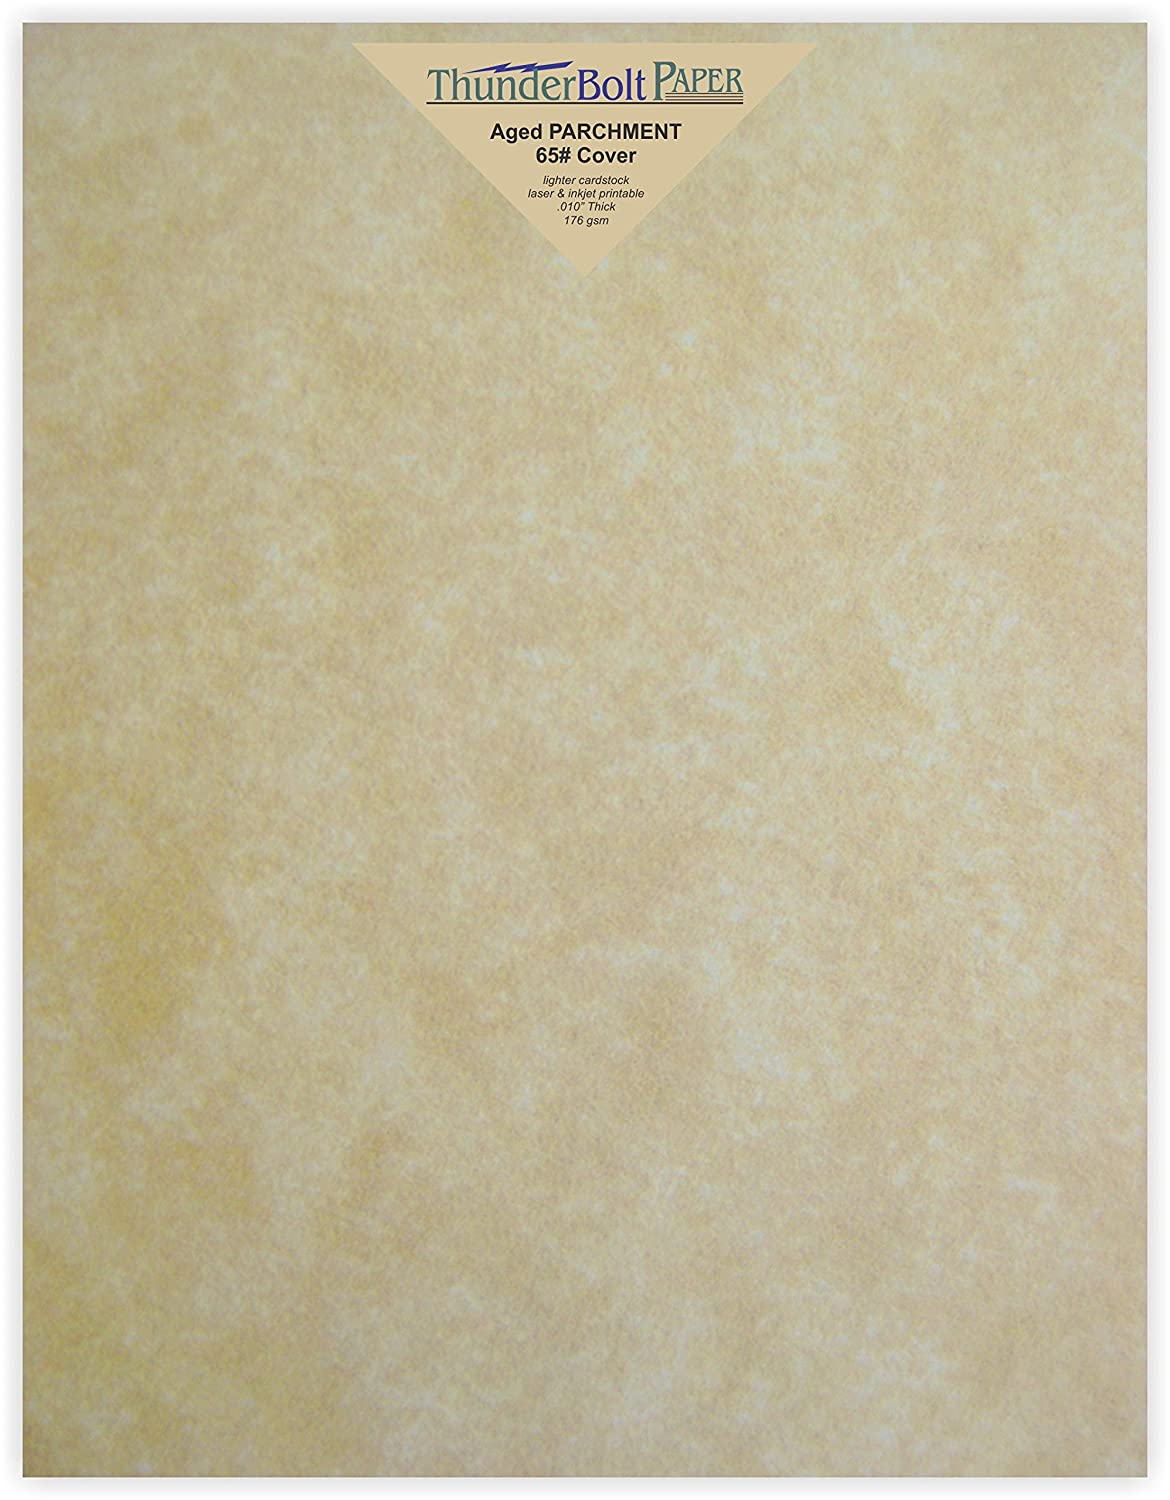 100 Old Age Parchment 65lb Cover Paper Sheets 8.5 X 11 Inches Cardstock Weight Colored Sheets 8.5